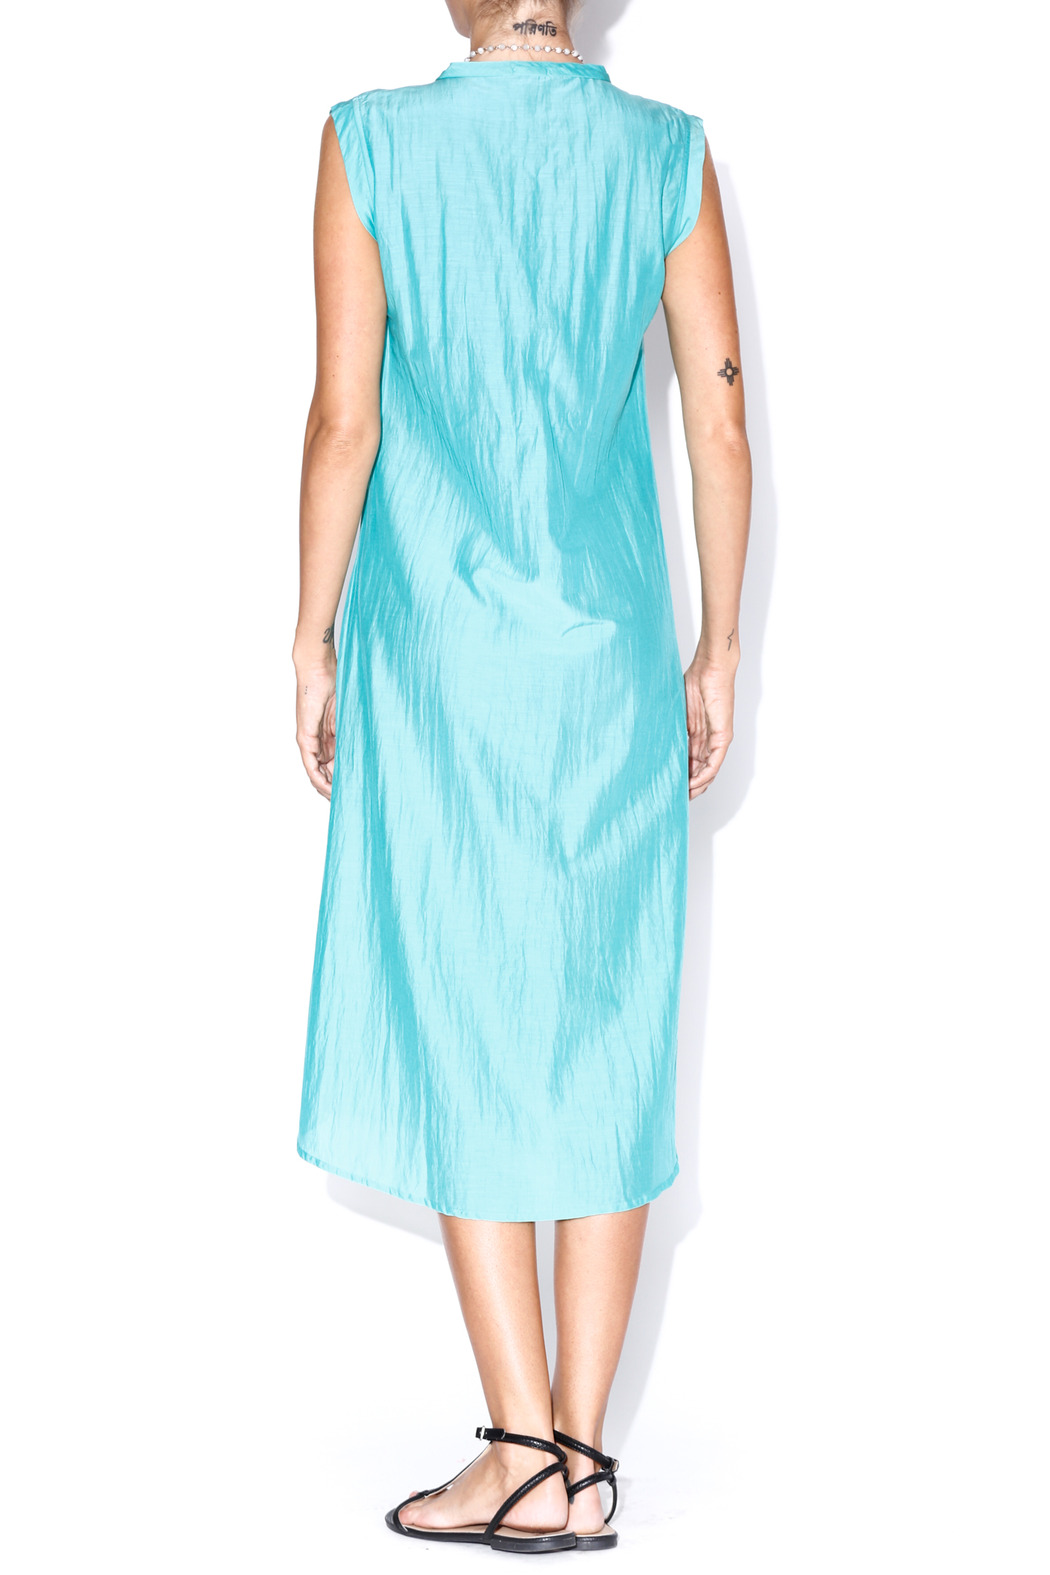 matta Turquoise Puja Dress - Back Cropped Image